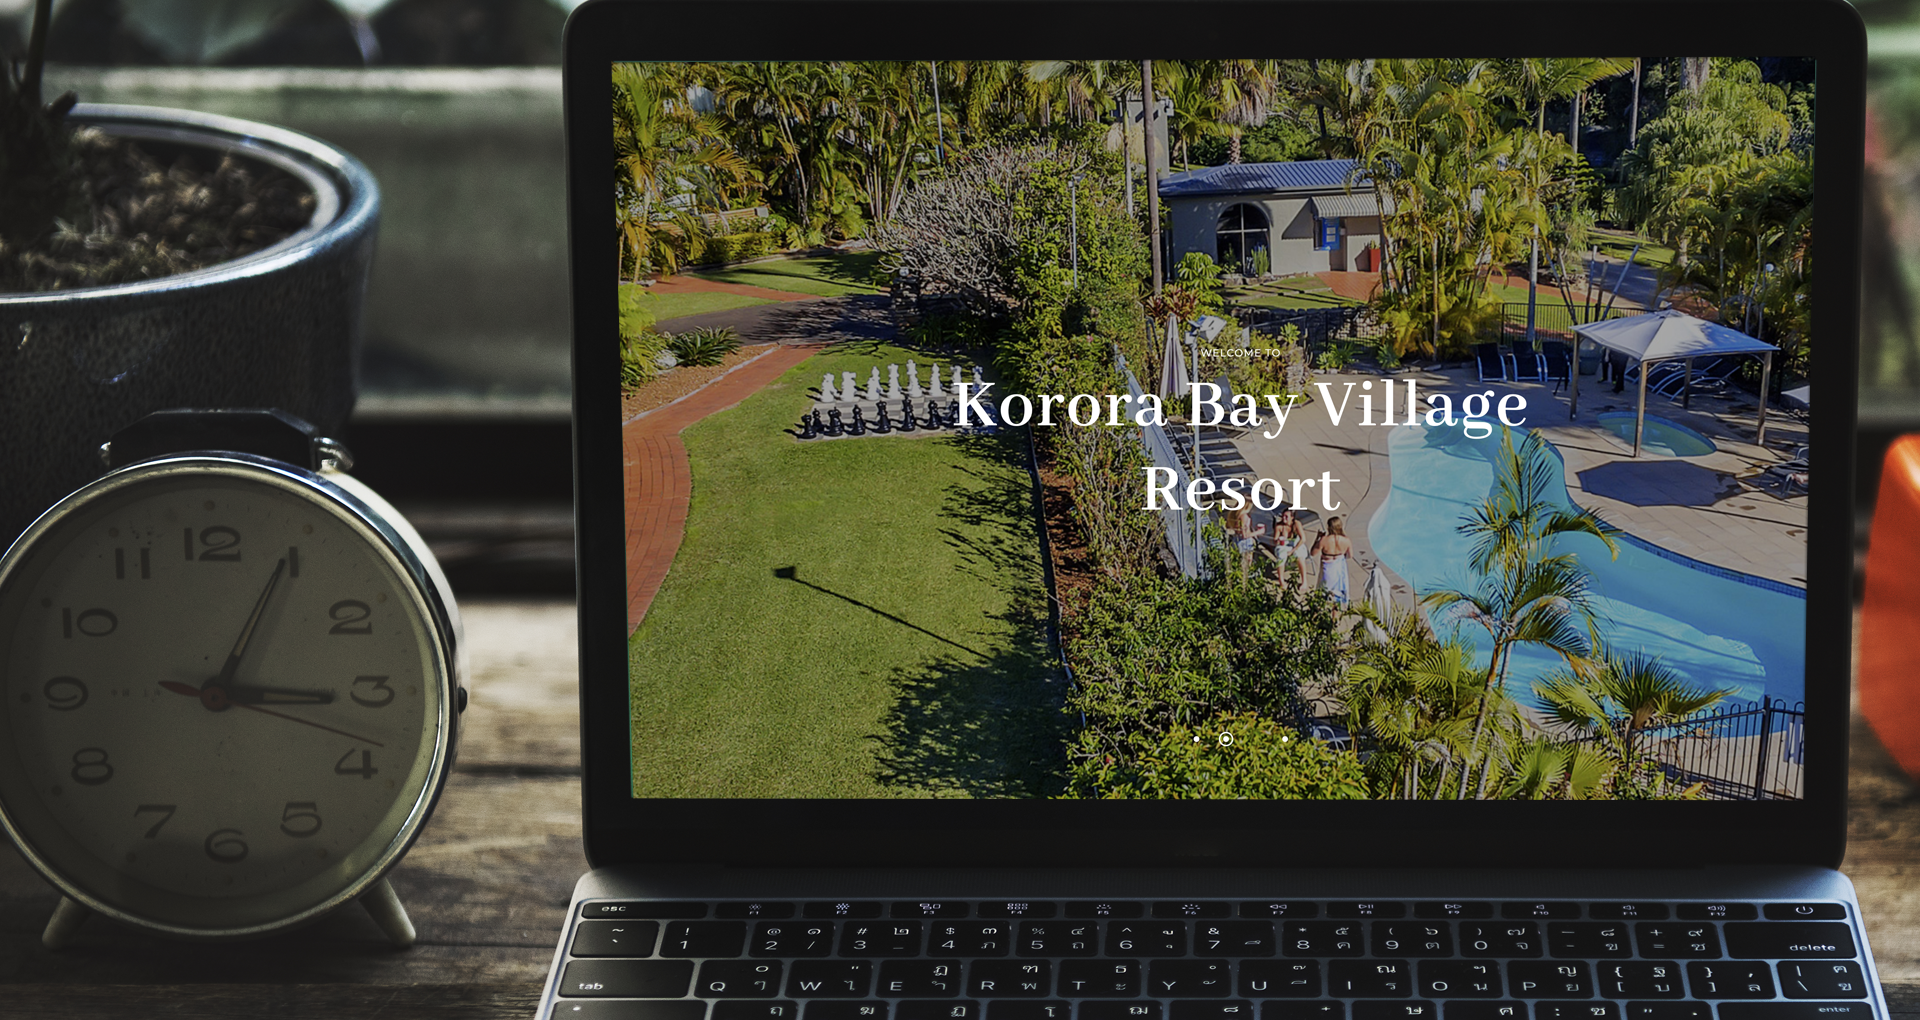 Korora Bay Village Resort Custom Website - kororabayvillage.com.au